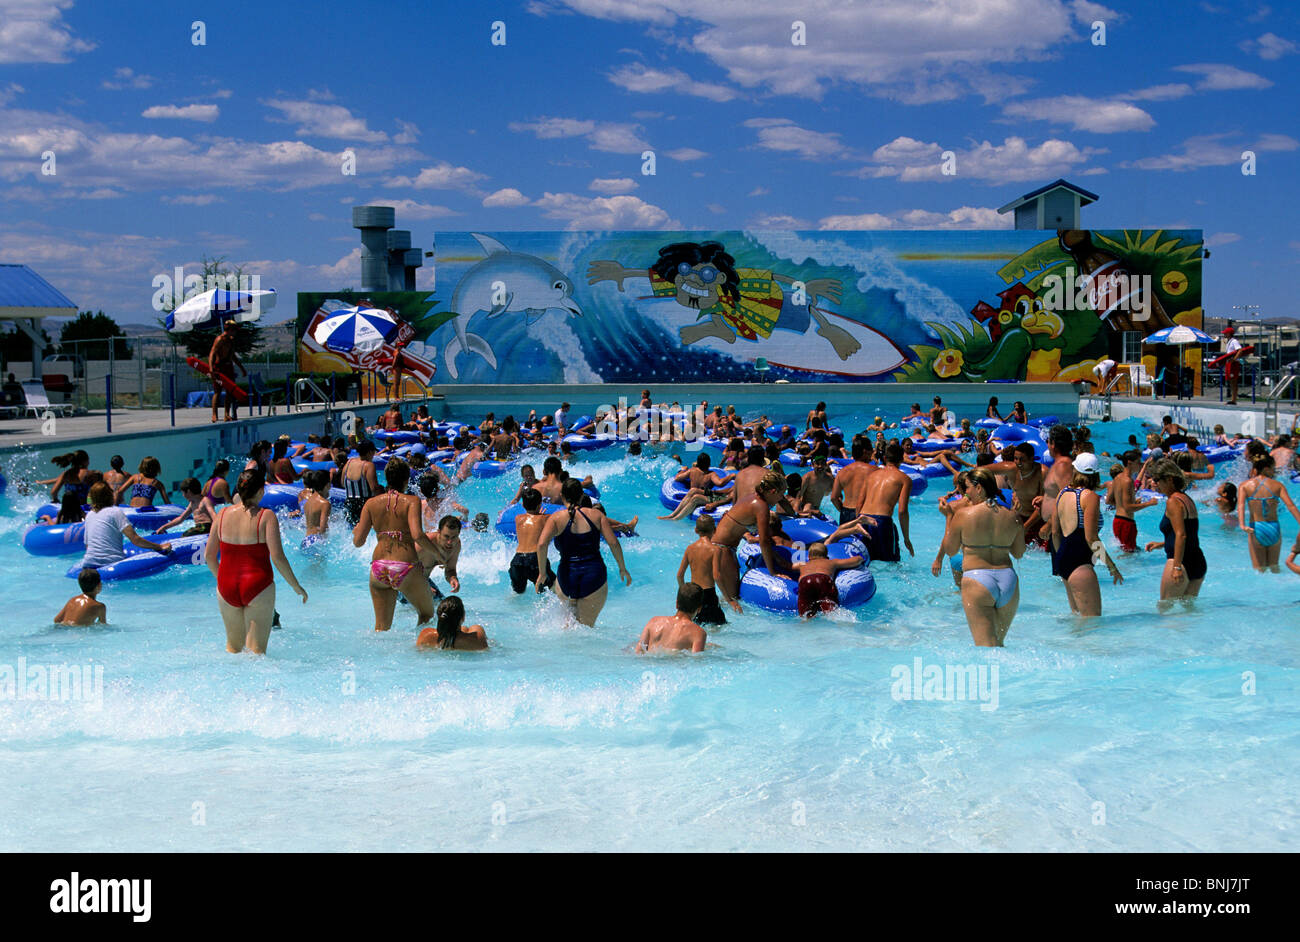 Usa nevada town city swimming pool water park bathing - Pools on the park swimming lessons ...